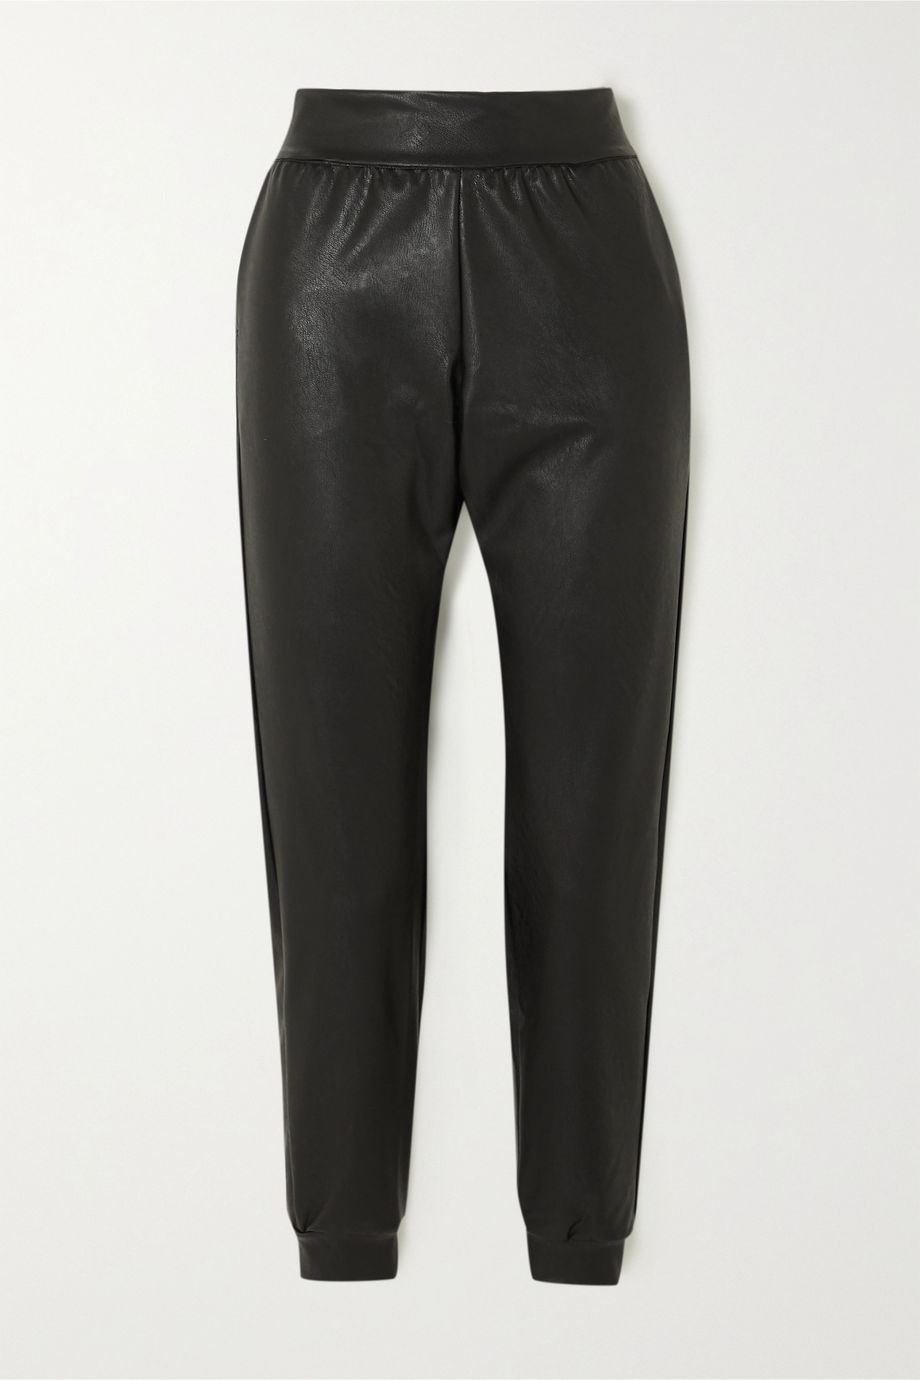 Commando Faux leather tapered track pants